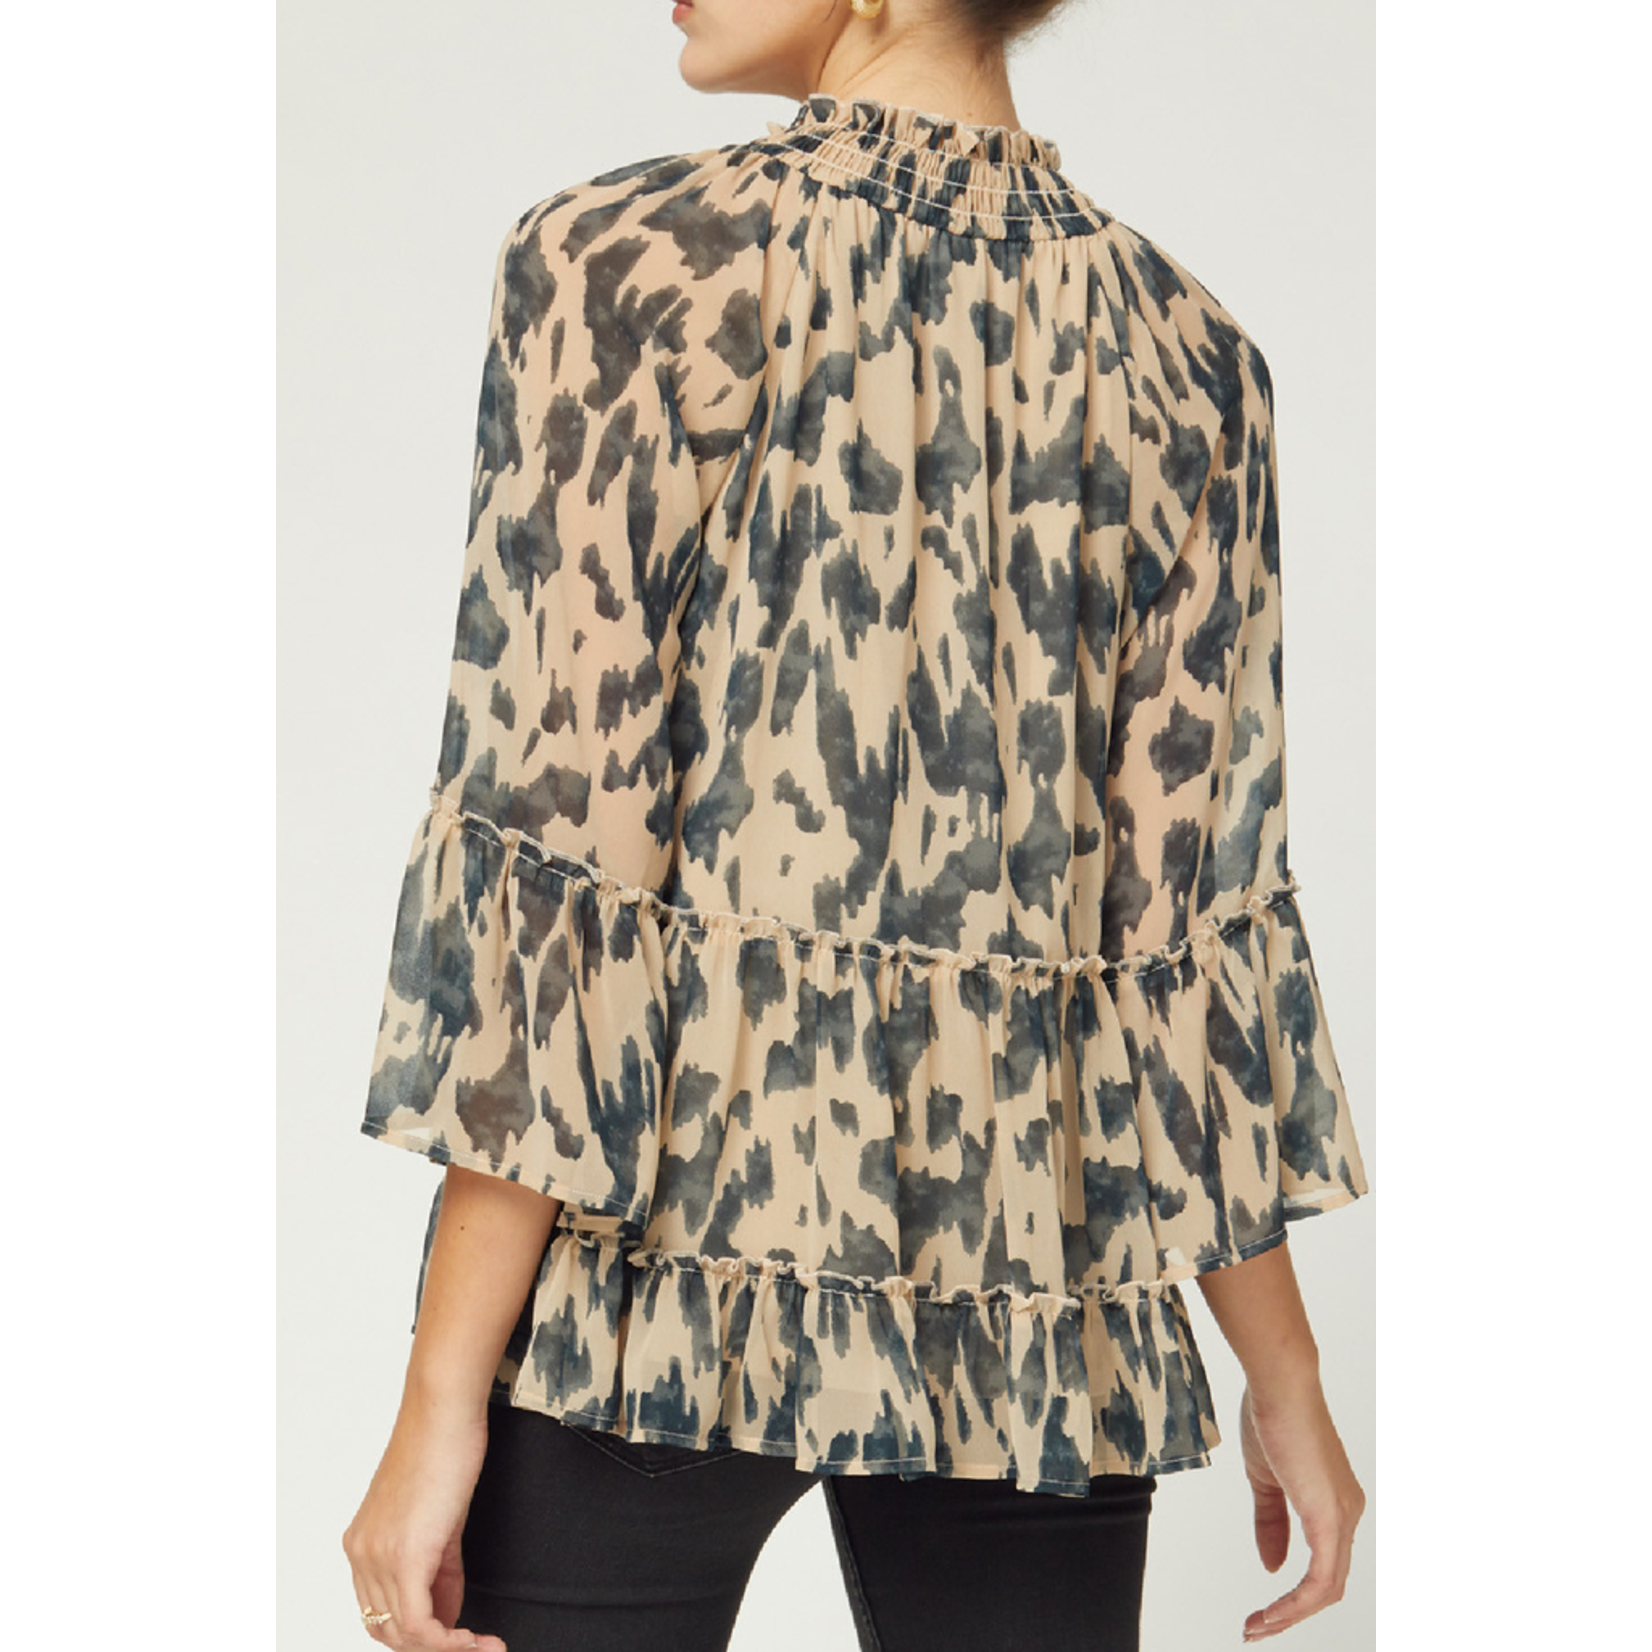 Entro Tiered 3/4 sleeve top